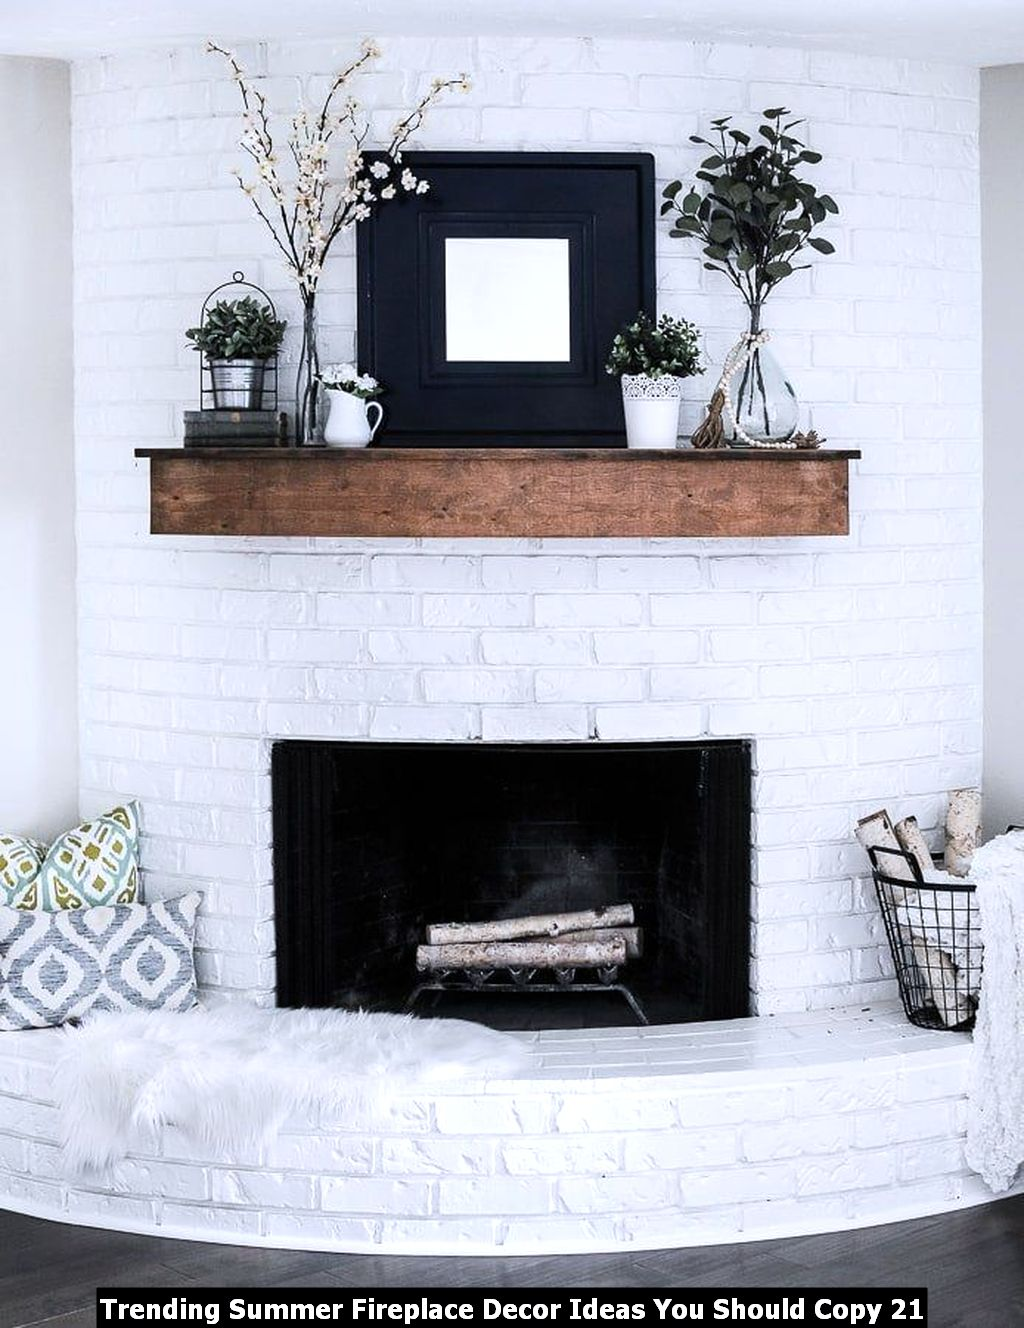 Trending Summer Fireplace Decor Ideas You Should Copy 21